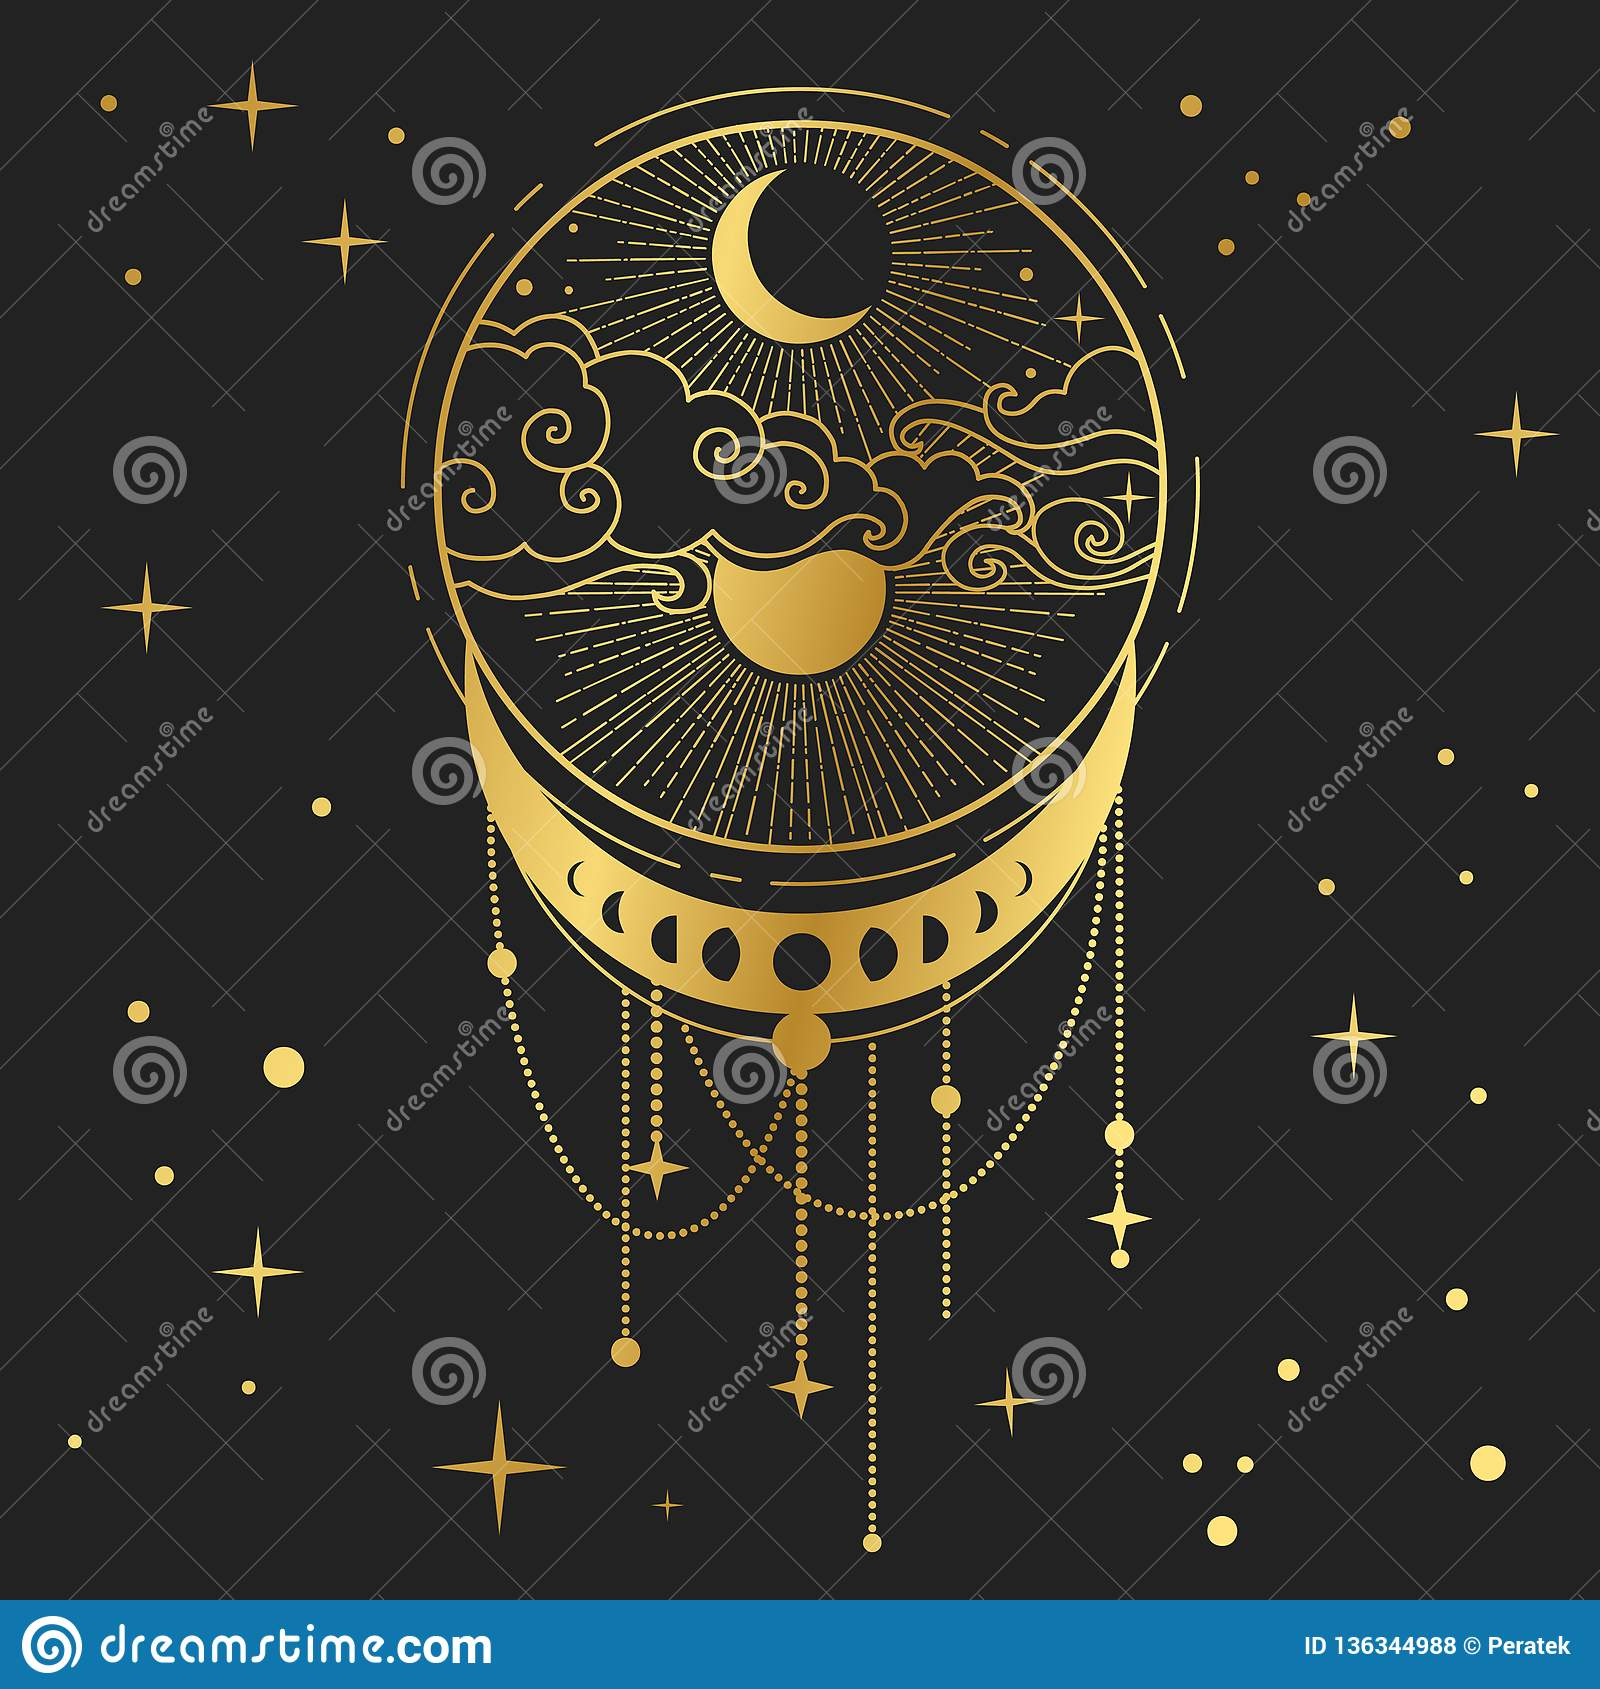 Dream Catcher Moon Sun Stock Illustrations 138 Dream Catcher Moon Sun Stock Illustrations Vectors Clipart Dreamstime